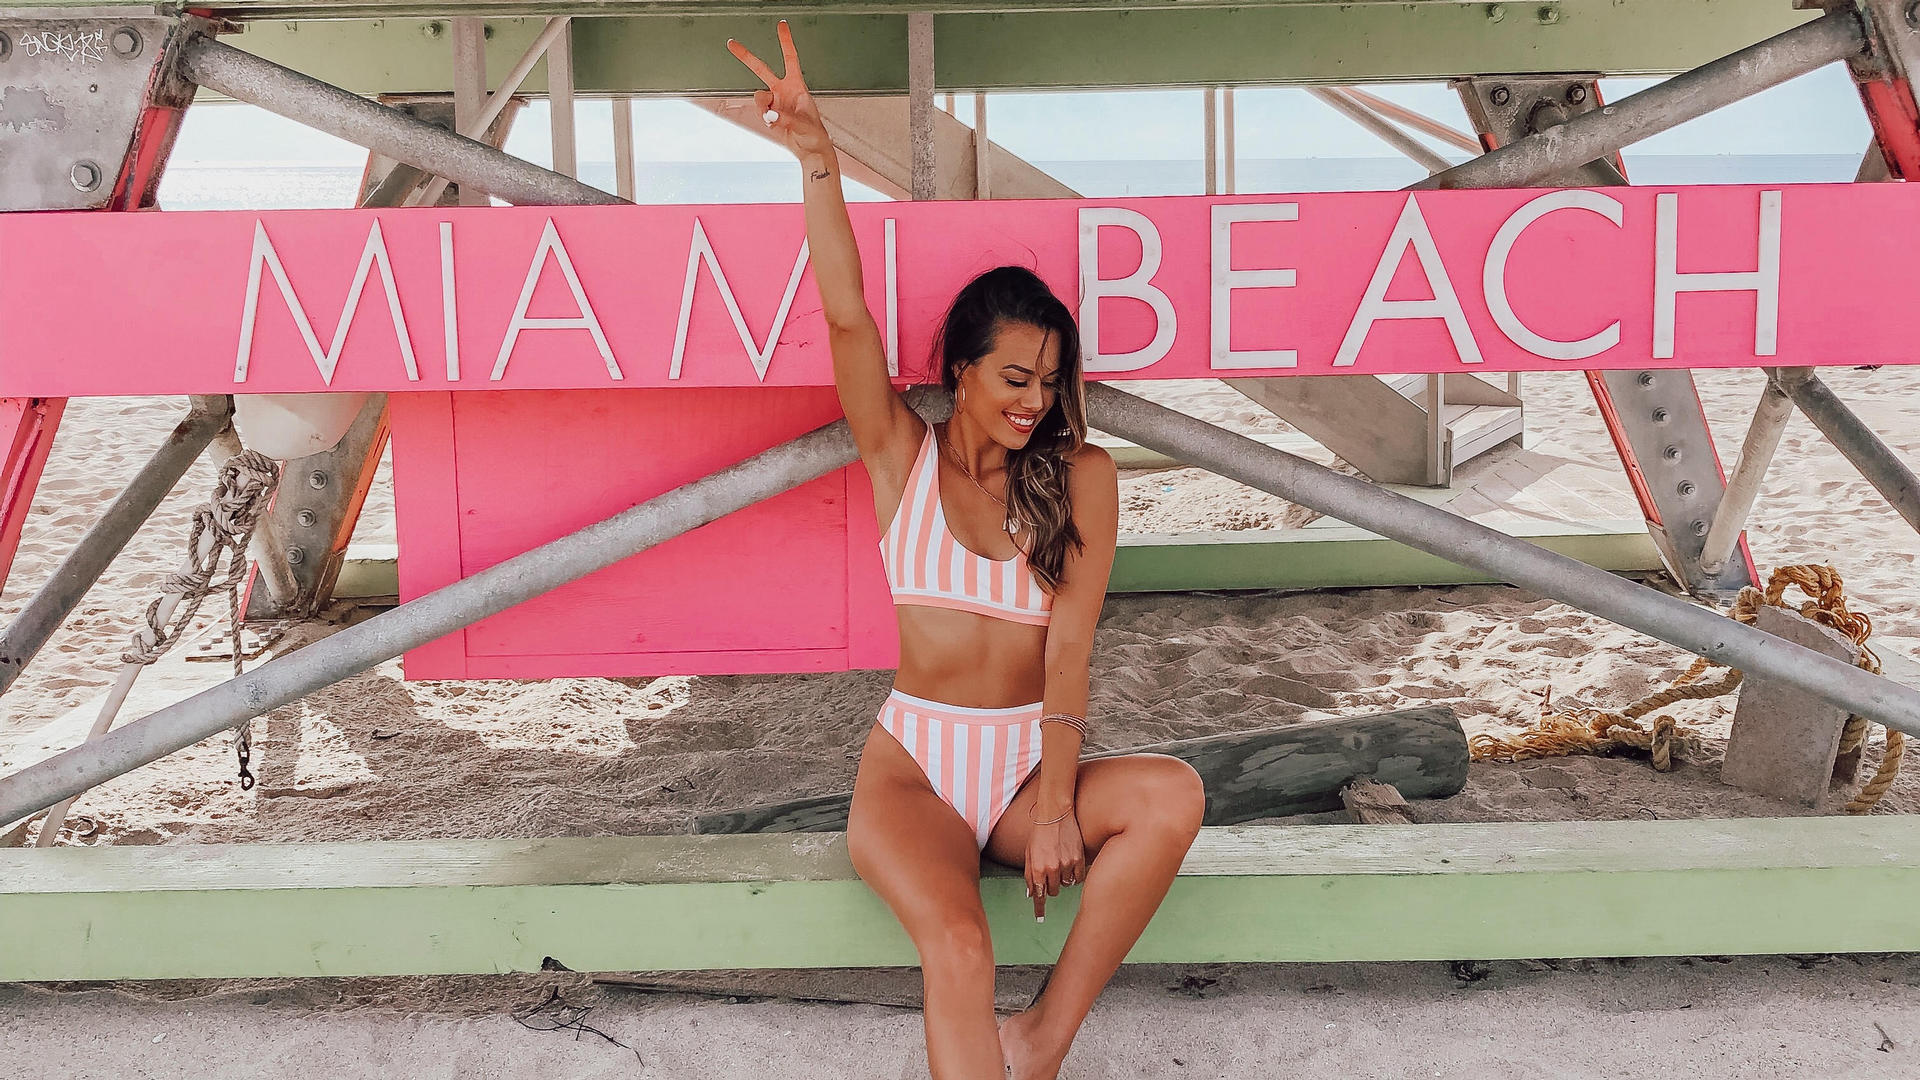 woman showing peace sign under miami beach sign